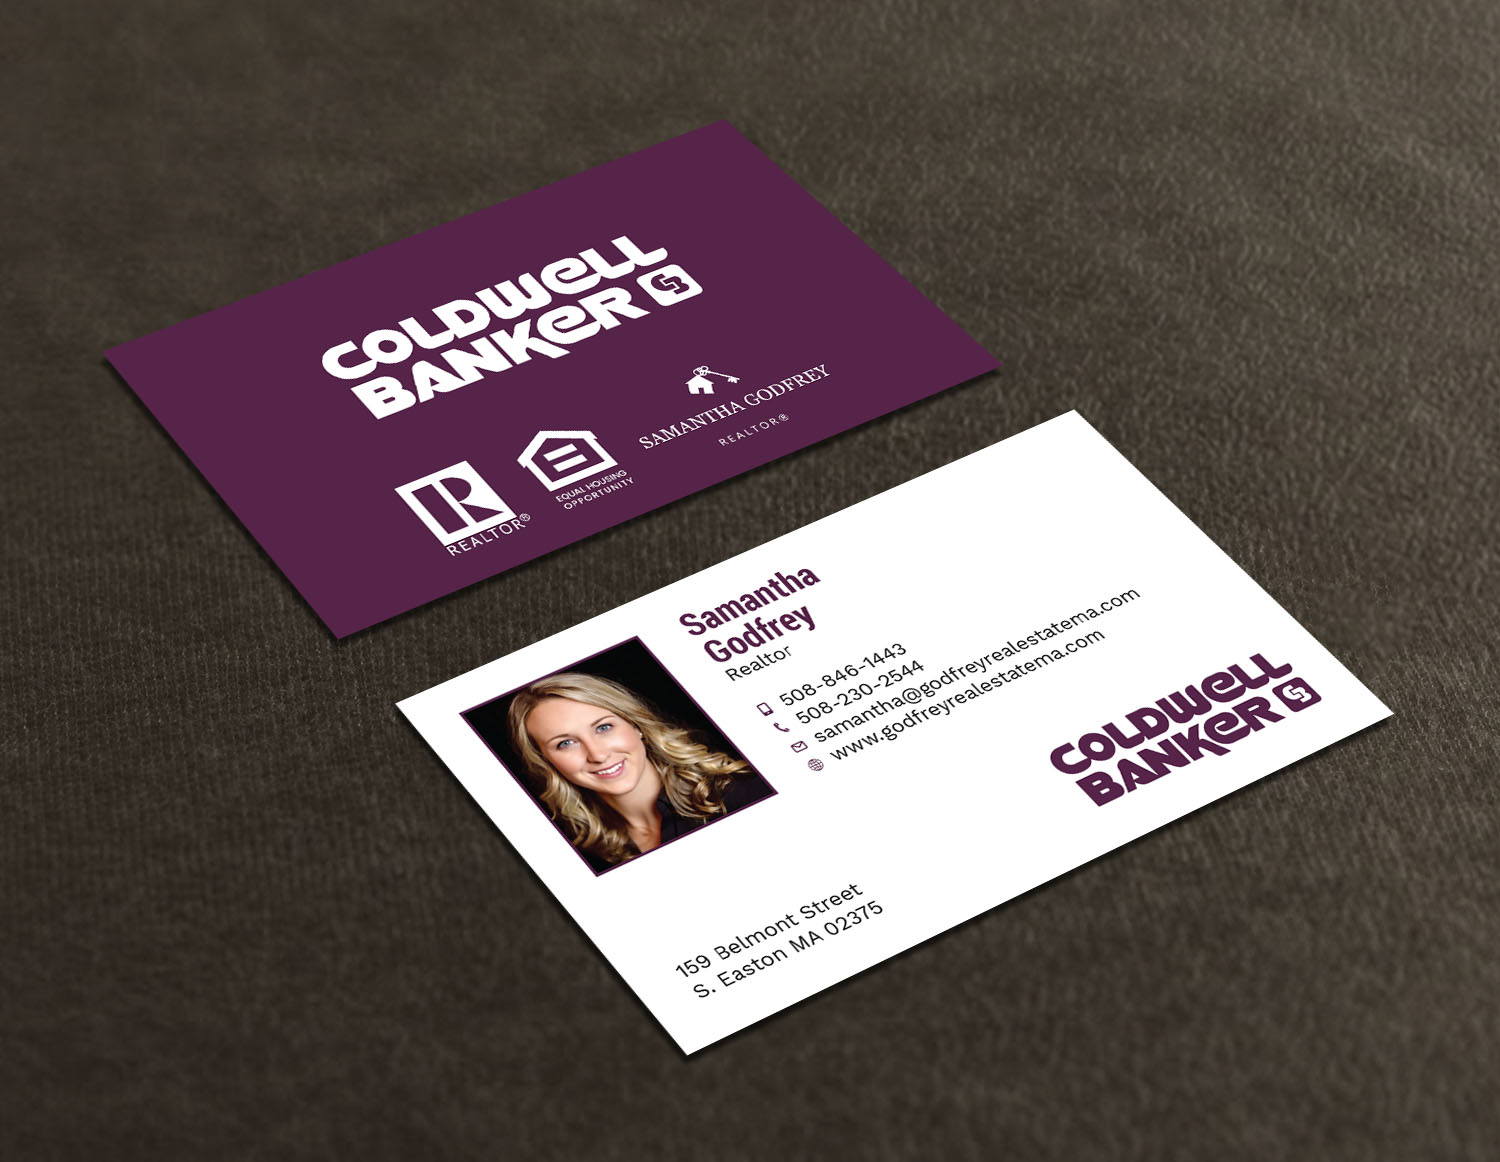 Modern professional real estate agent business card design for business card design by avanger000 for godfrey auto inc design 17847955 reheart Gallery